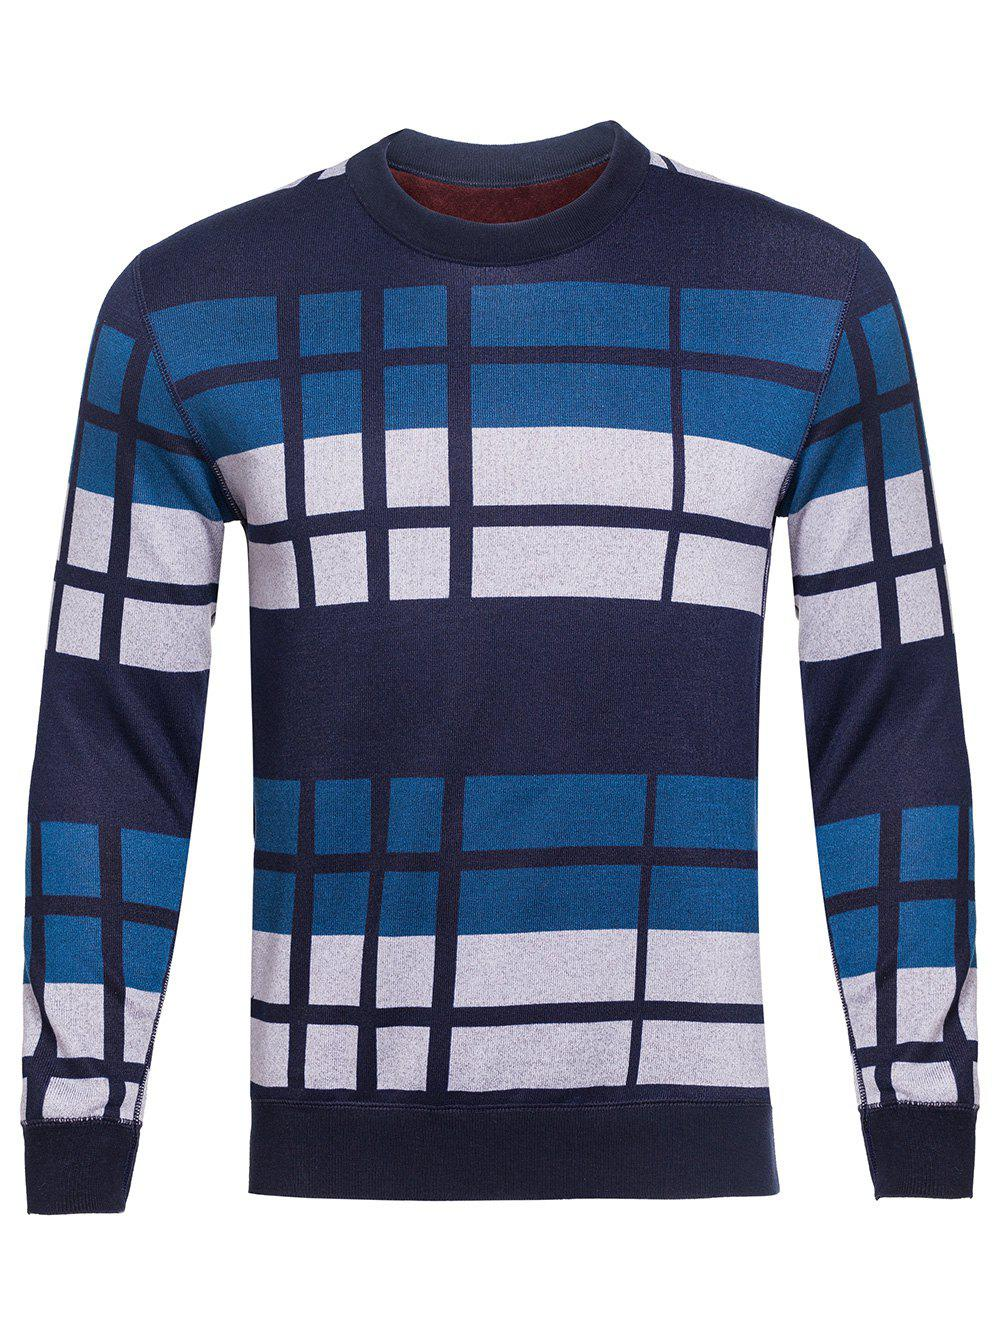 Vertical Striped Color Block Crew Neck Knitting Sweater процессор intel core i5 8600k 3 6ghz